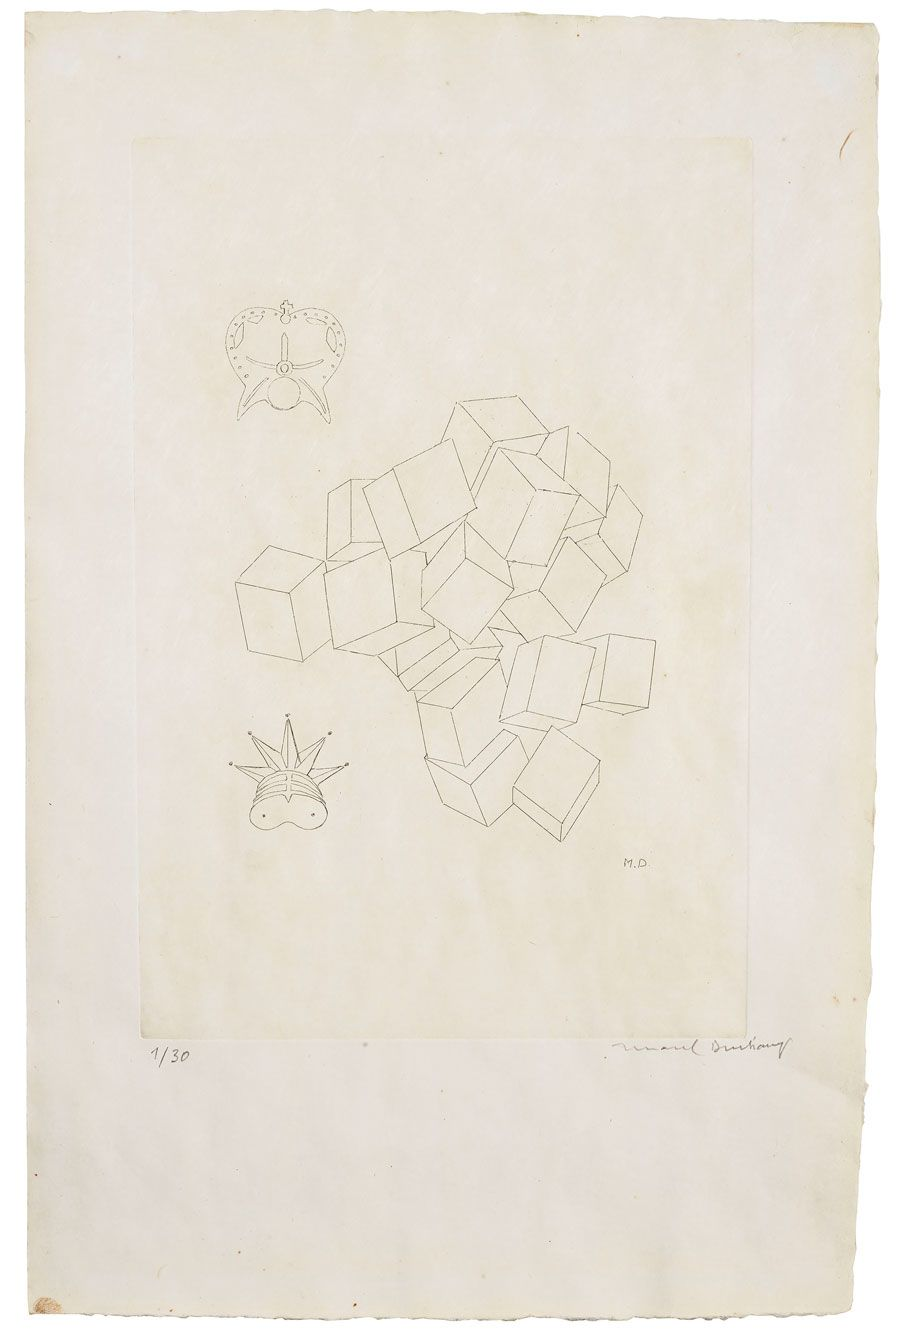 Marcel Duchamp (1887-1968), King and Queen, from: The Lovers. Plate 505 x 325 mm. Sheet 502 x 325 mm. Estimate: £5,000-7,000. Offered in Prints & Multiples on 18 September 2019 at Christie's in London